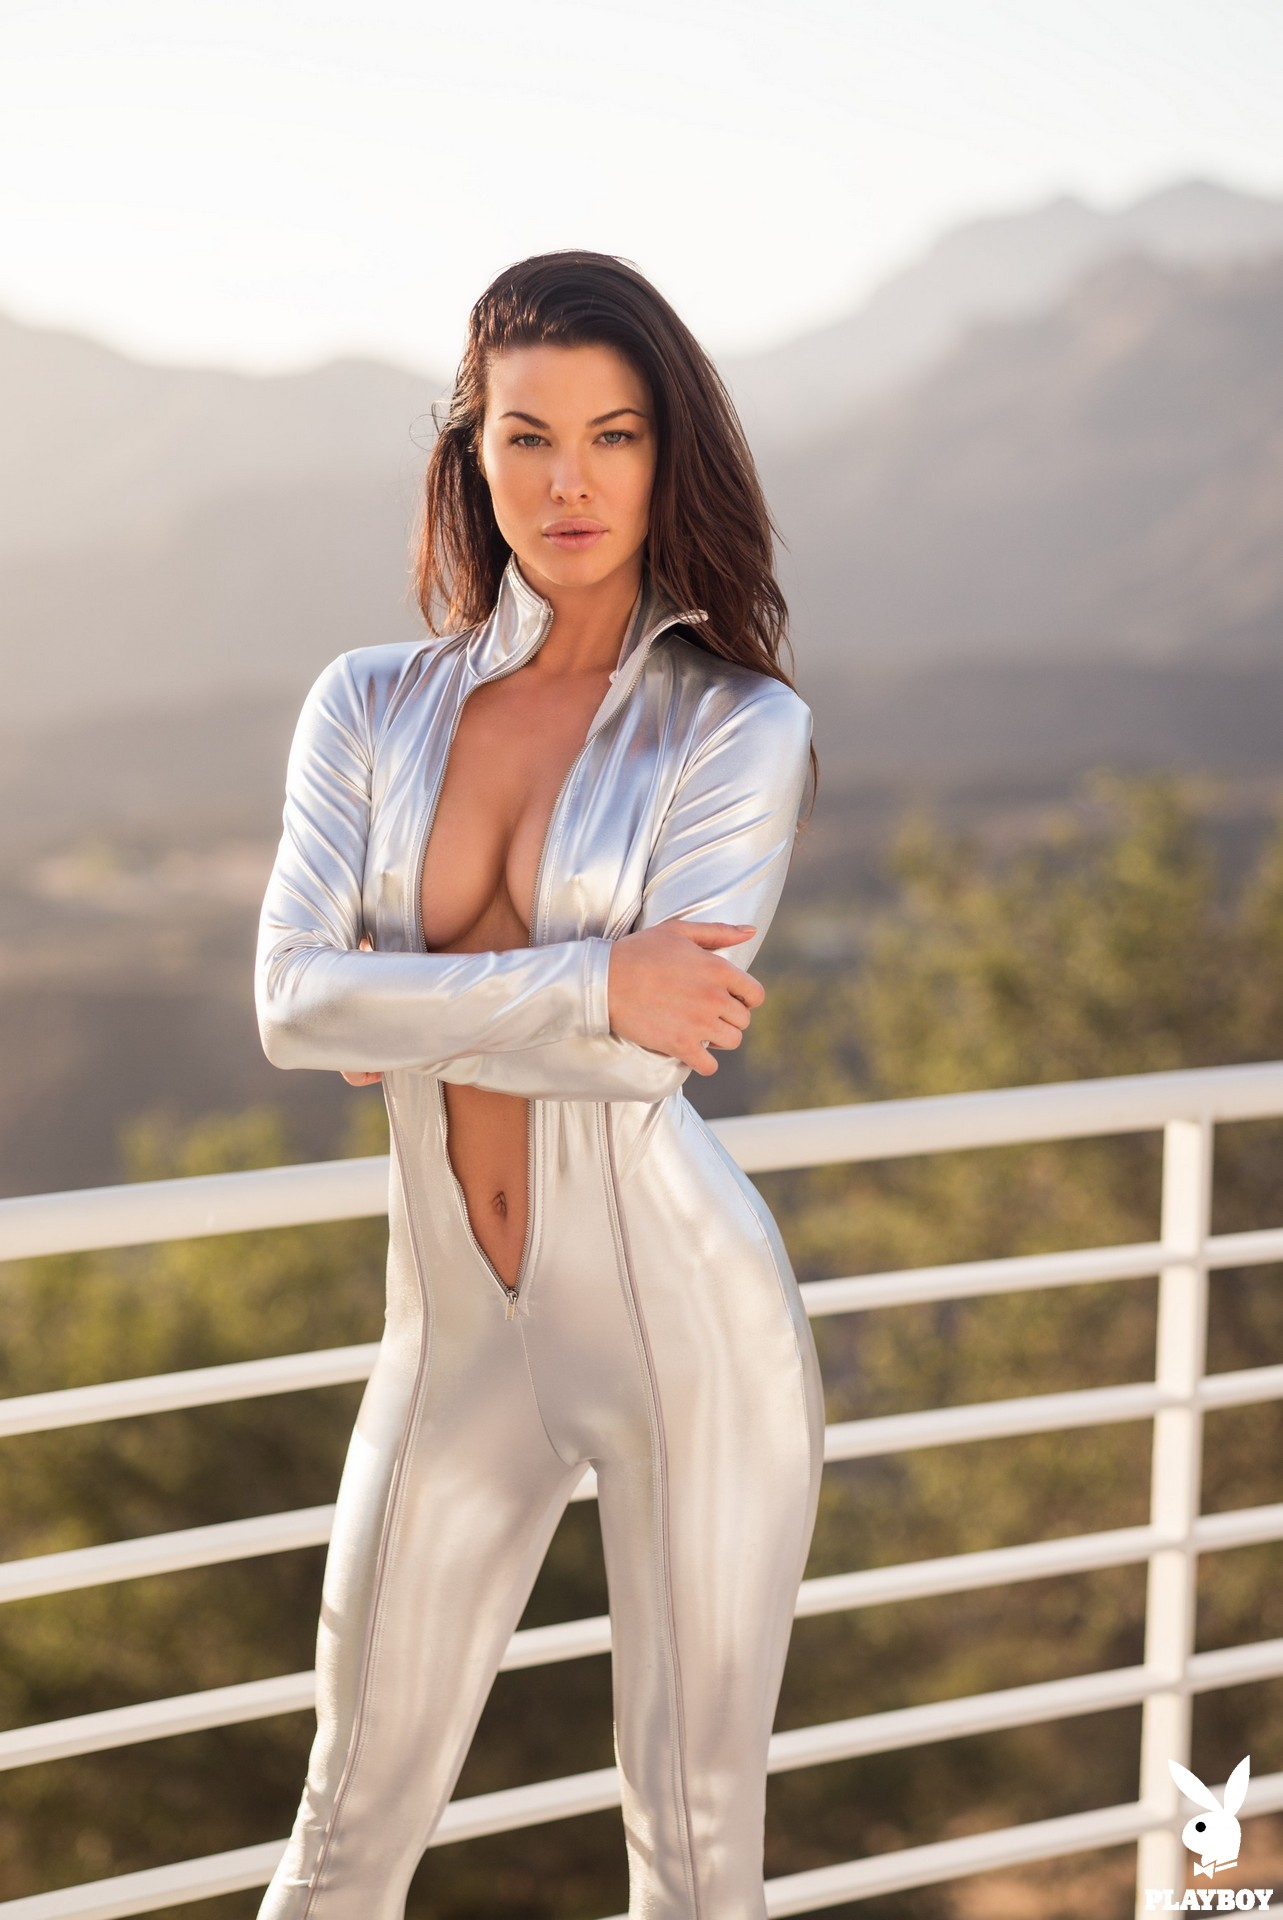 Playmate March 2018: Jenny Watwood 36